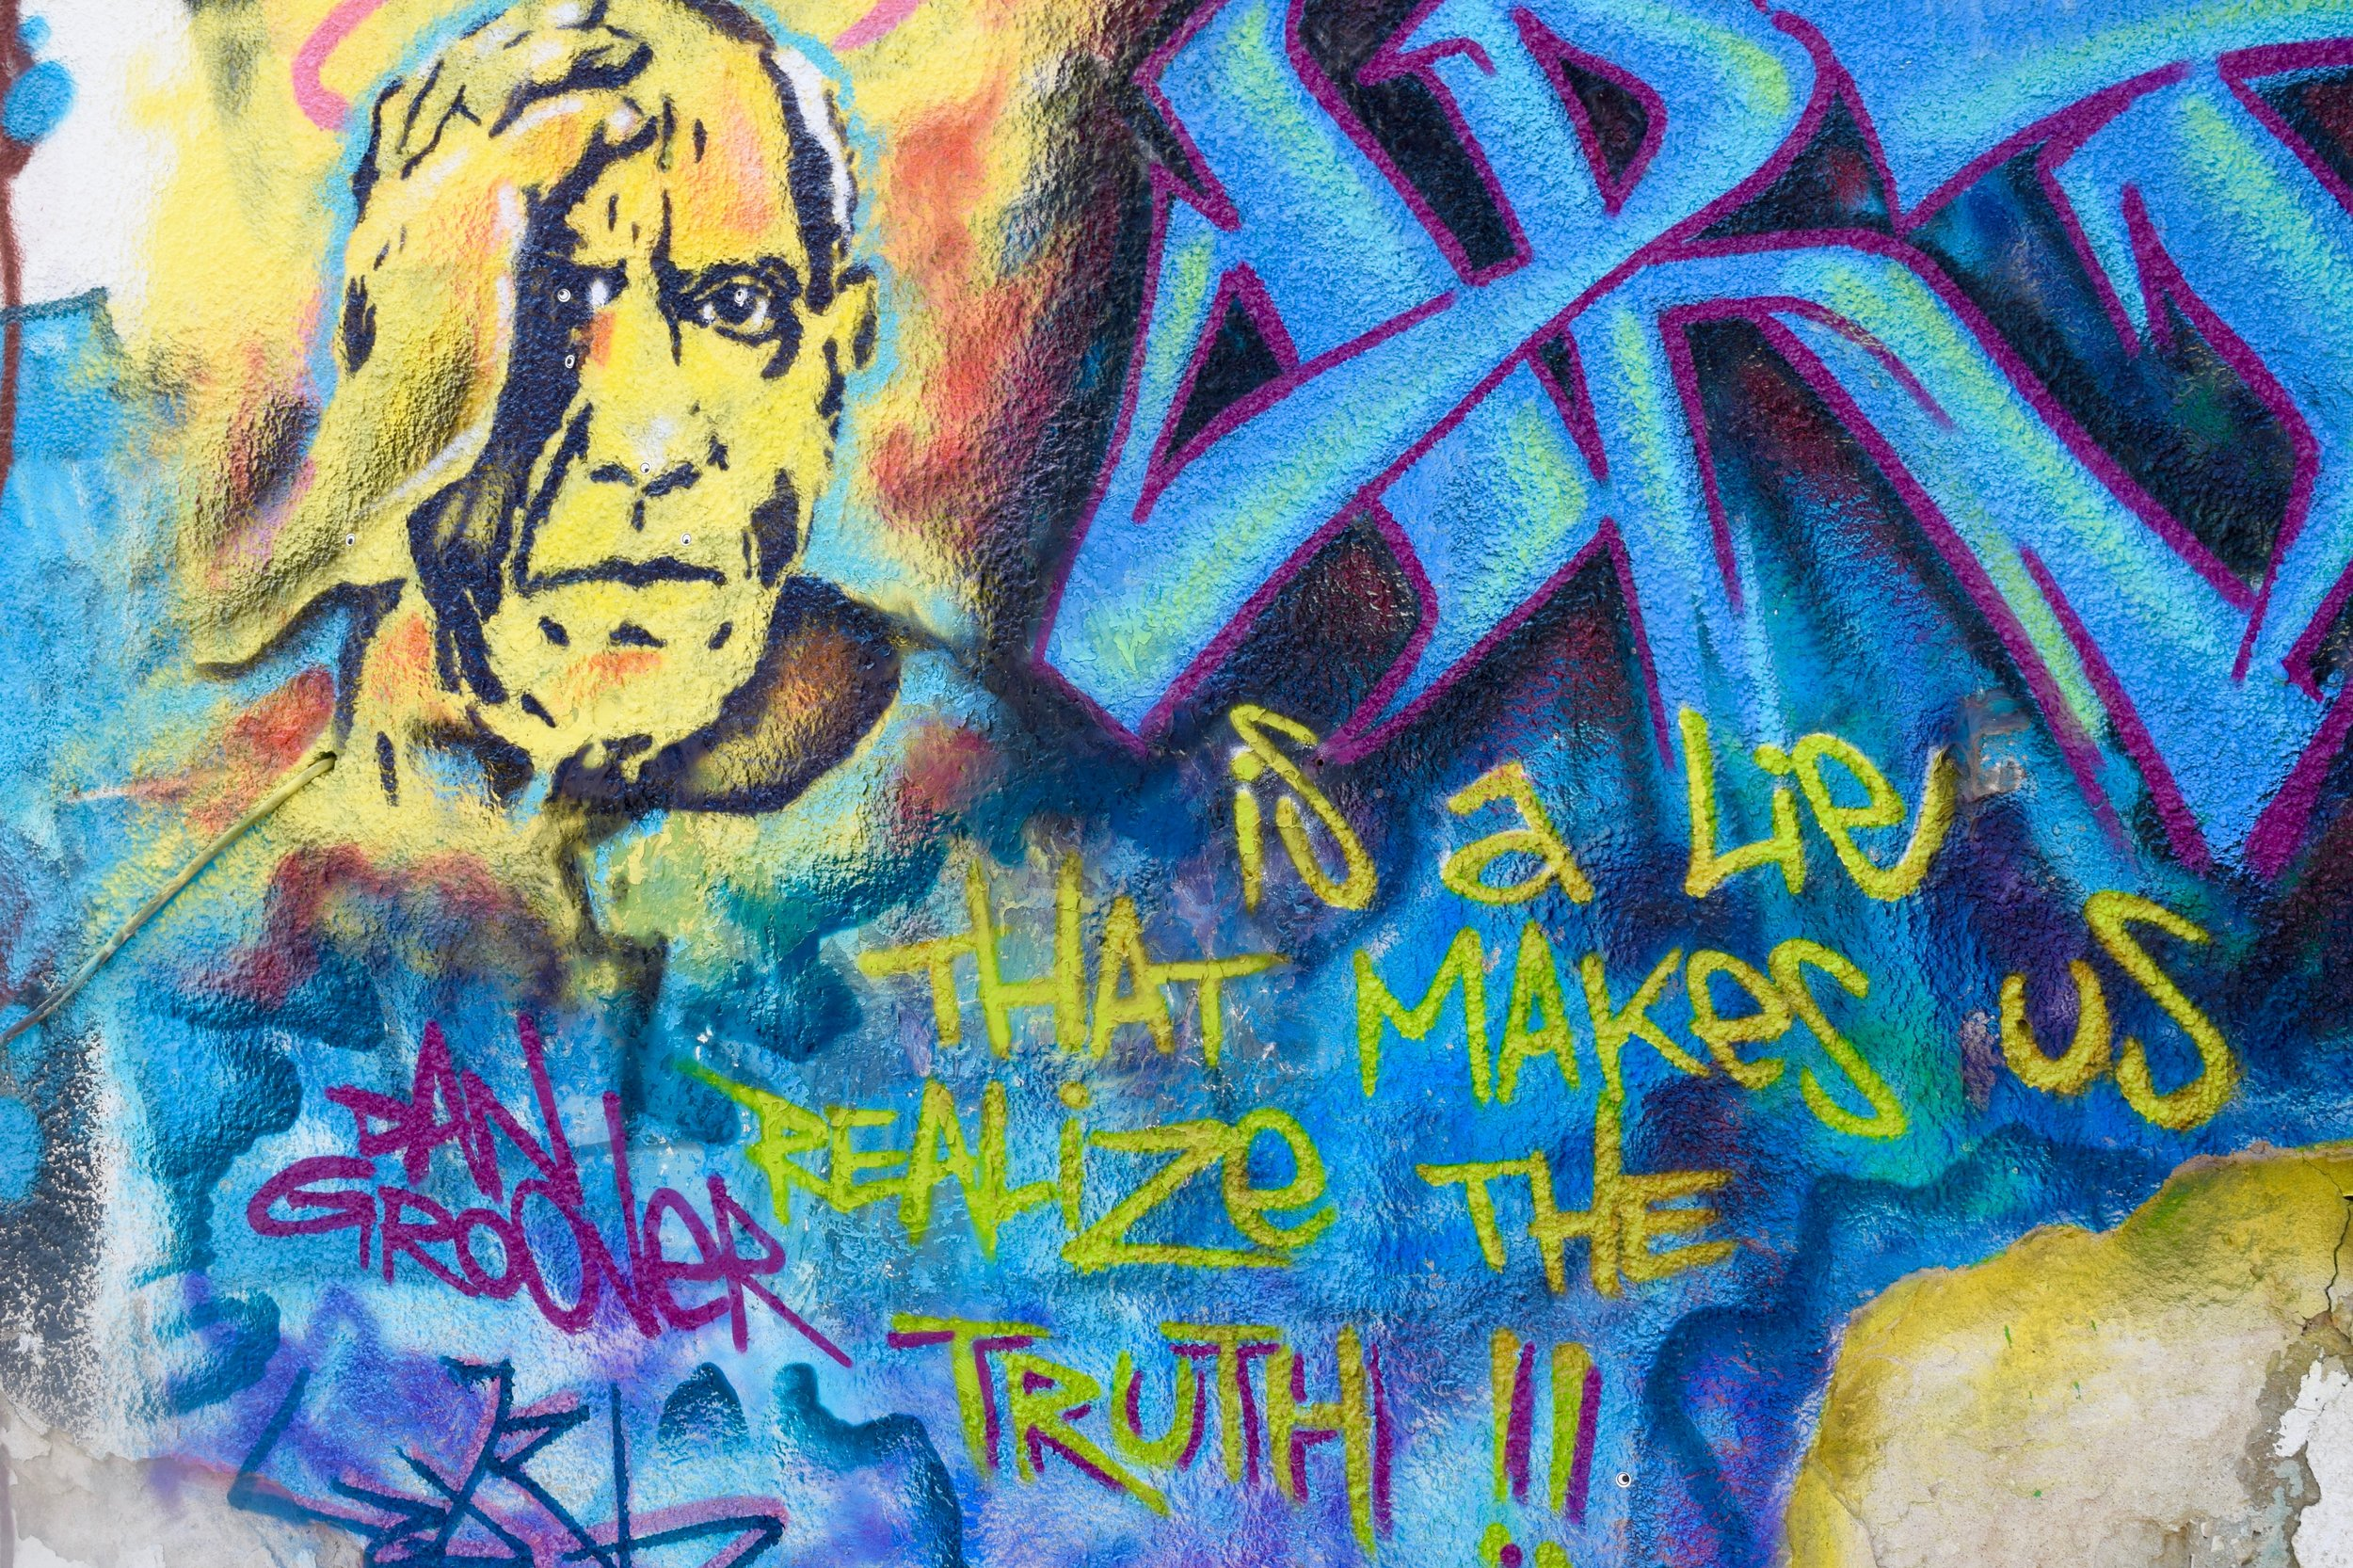 'Art is a lie that makes us realize the truth'